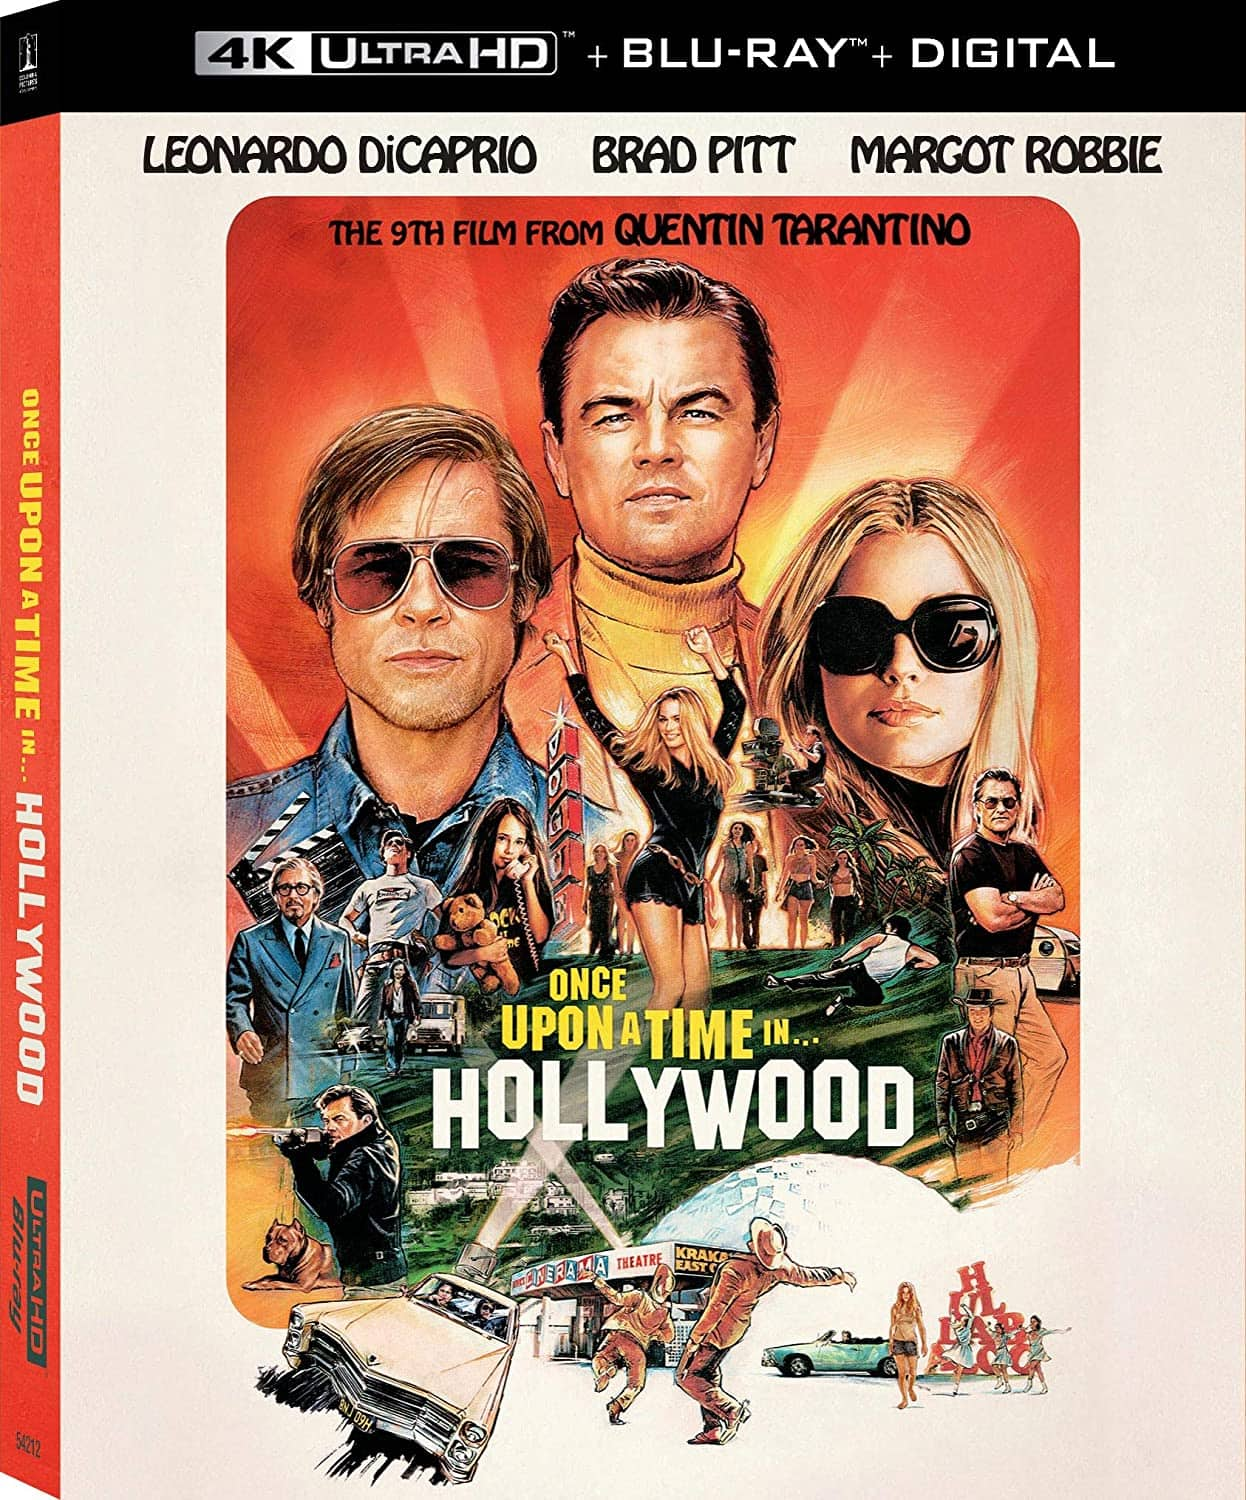 Once Upon a Time in Hollywood (4K UHD + Blu-ray + Digital)